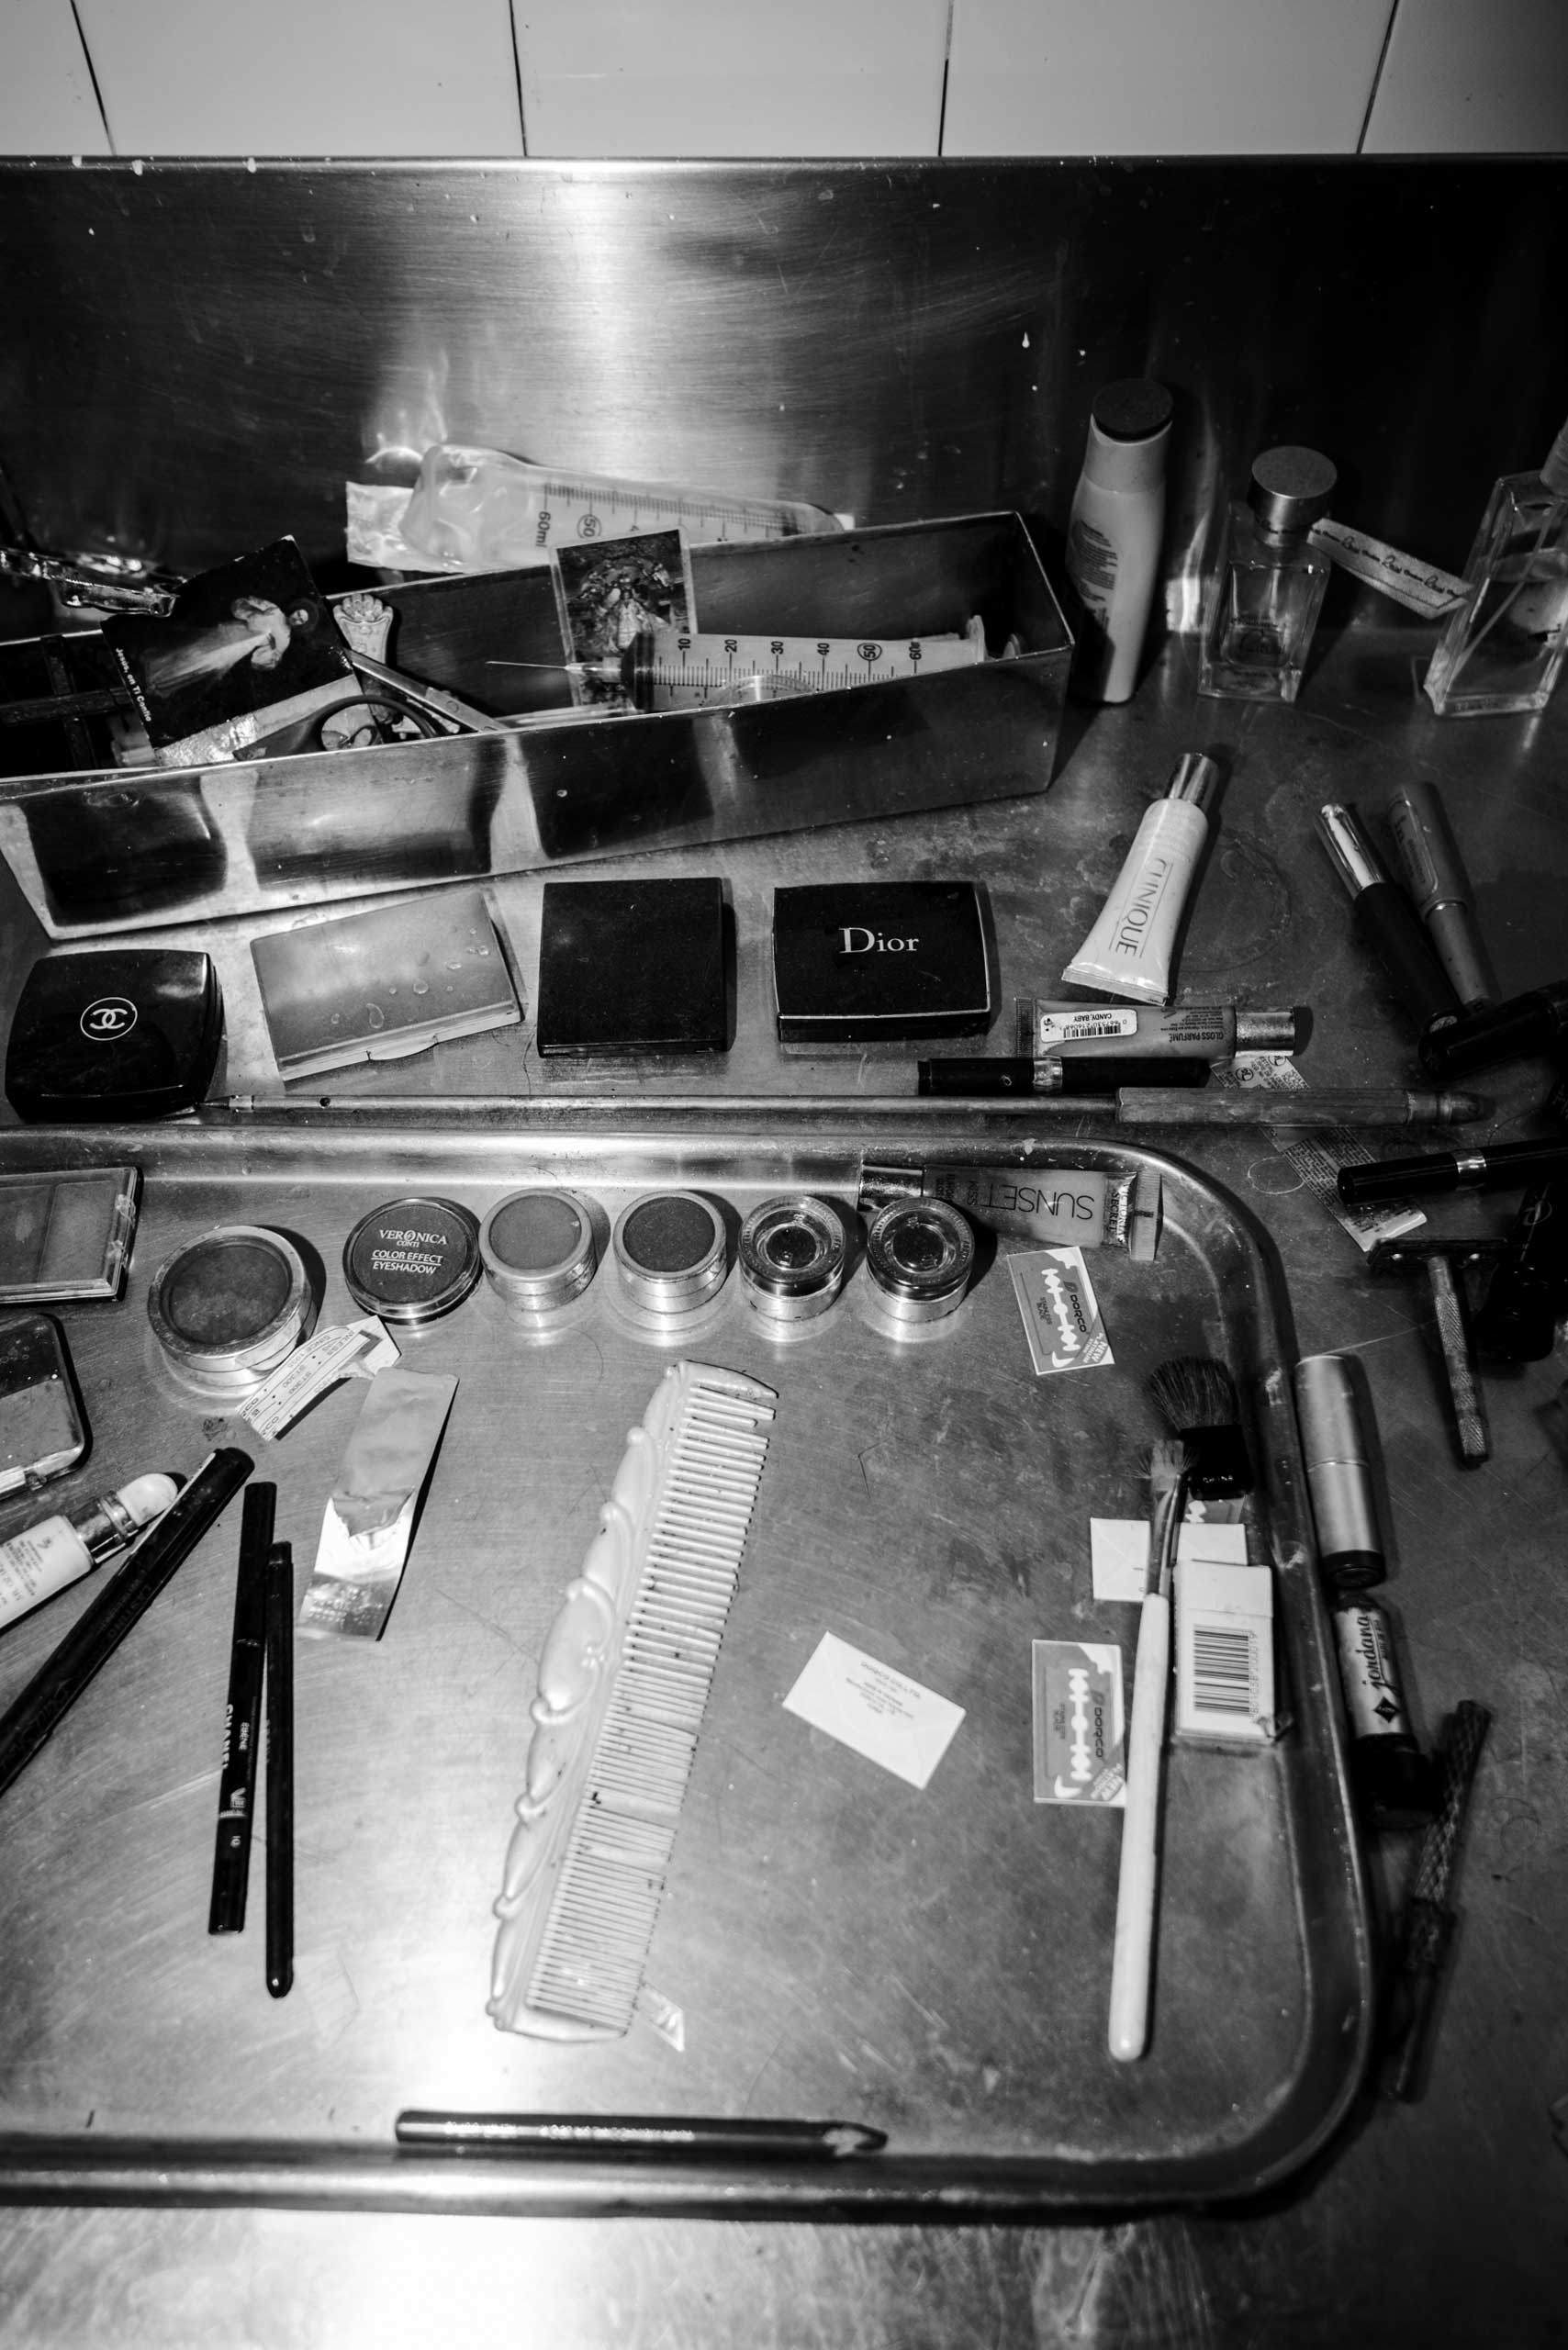 Embalmer's tools used to prepare the bodies. March 7, 2016.